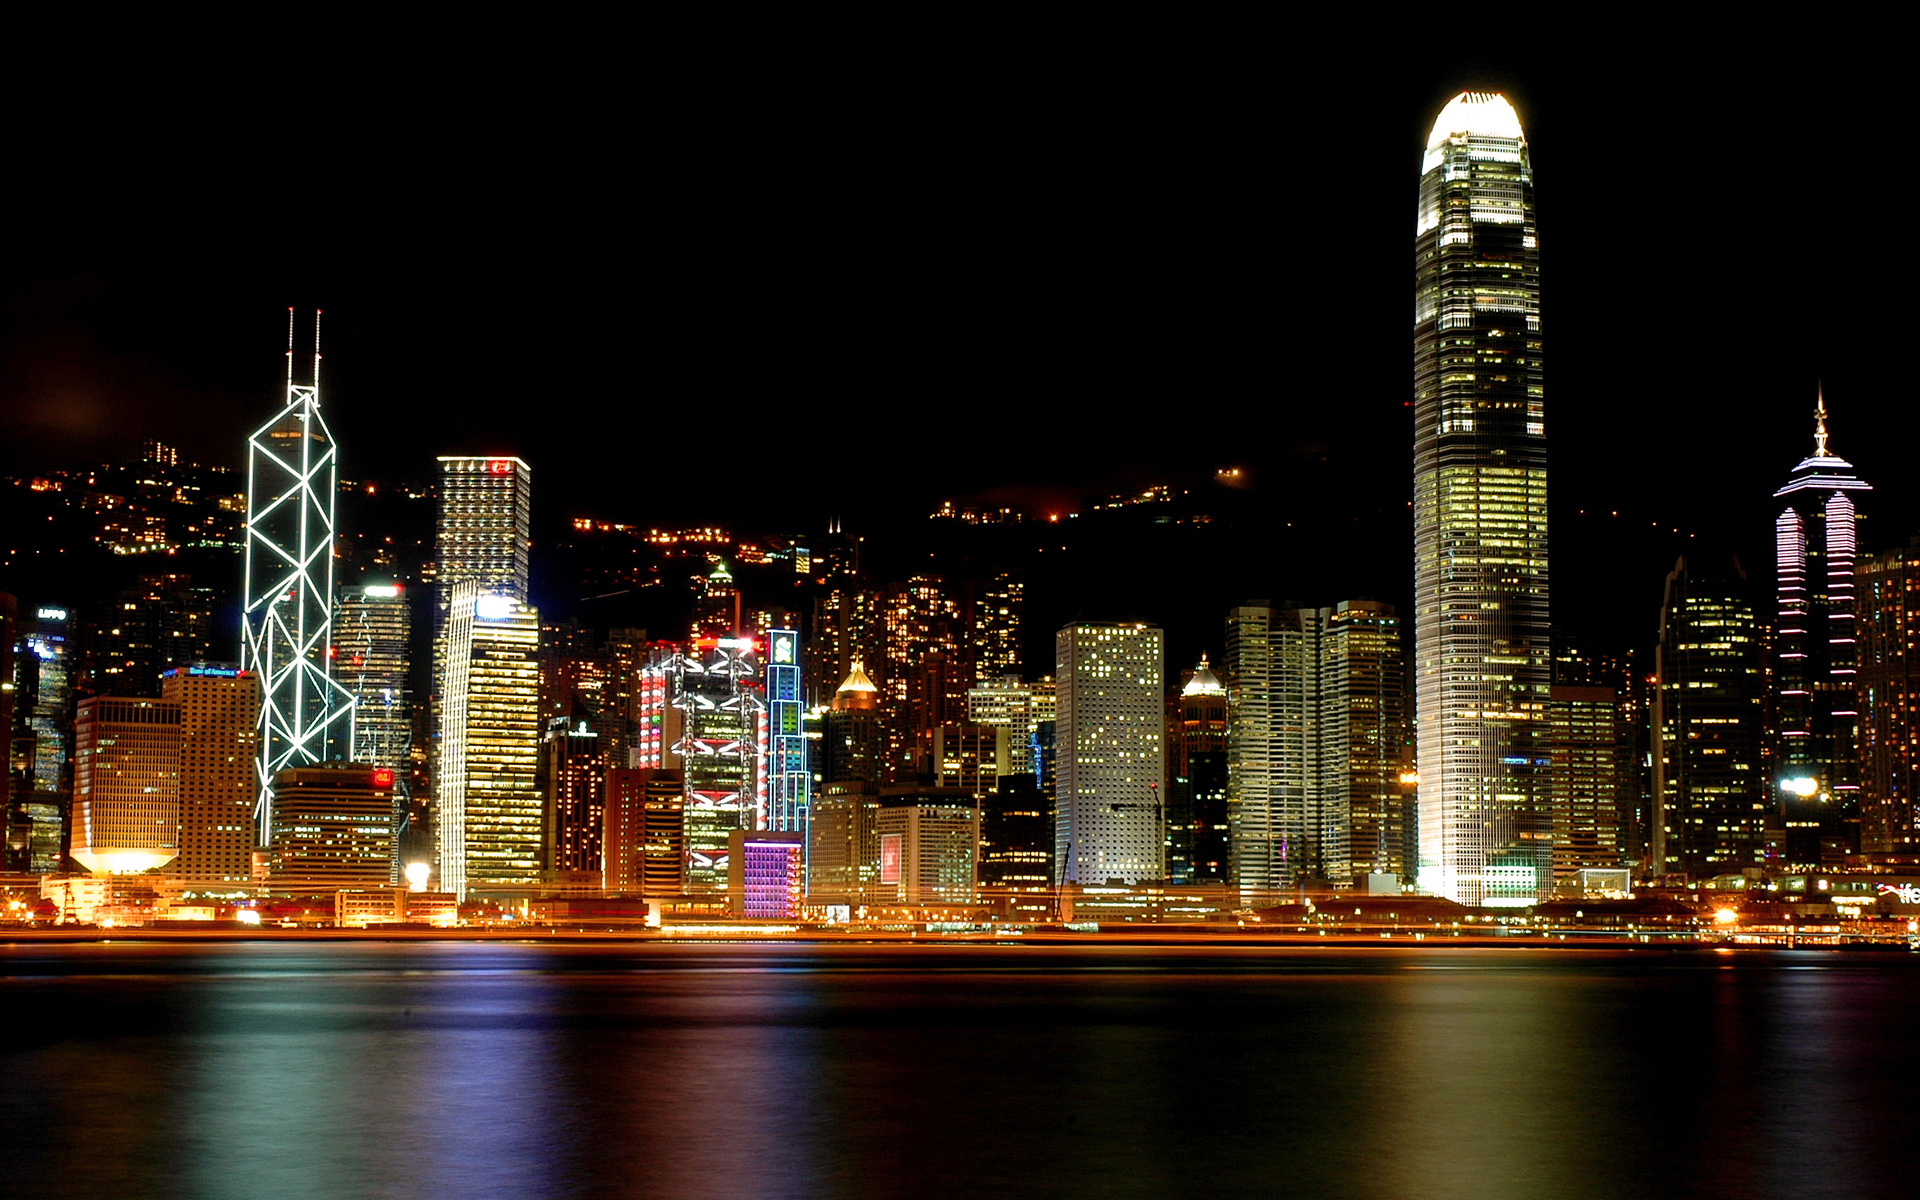 Hong Kong Victoria Harbour 348.23 Kb